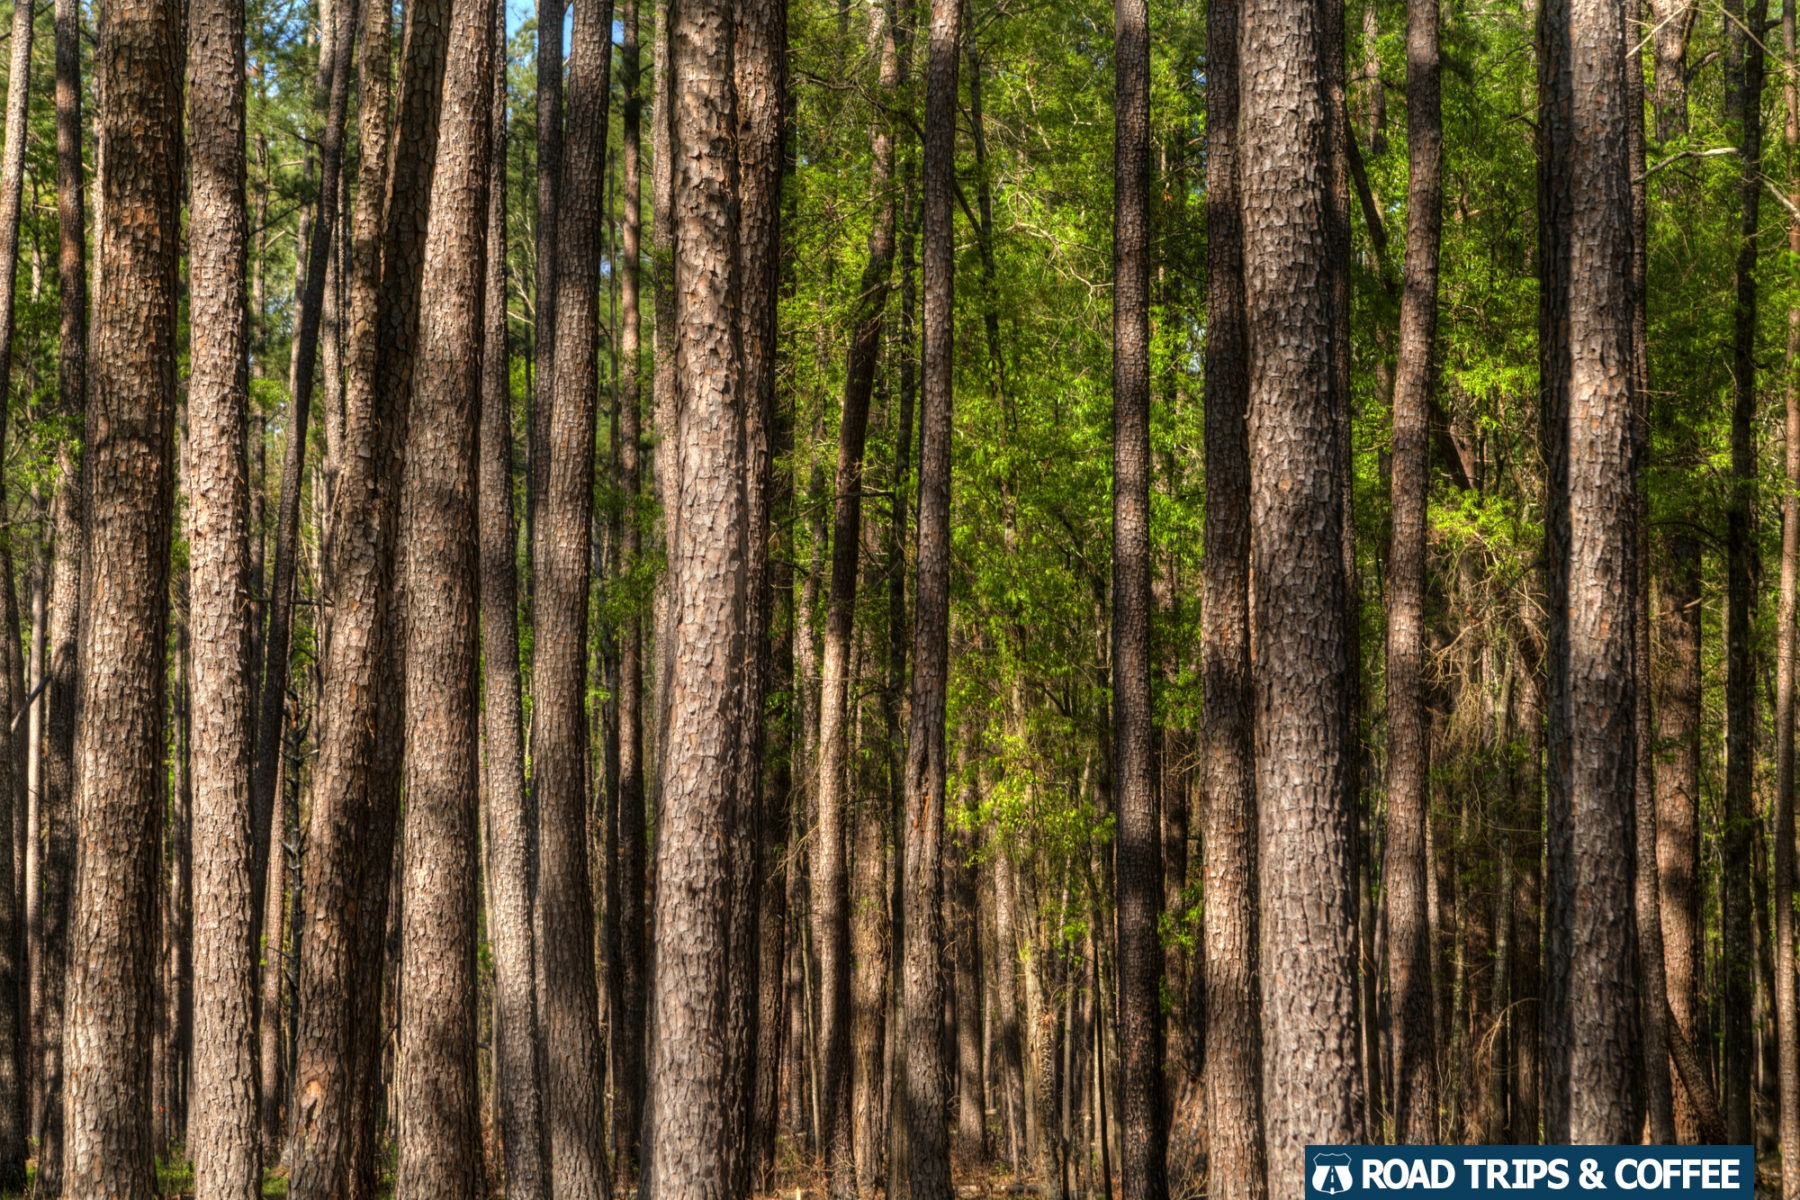 Towering long leaf pine trees along the Bluff Trail in Congaree National Park in South Carolina